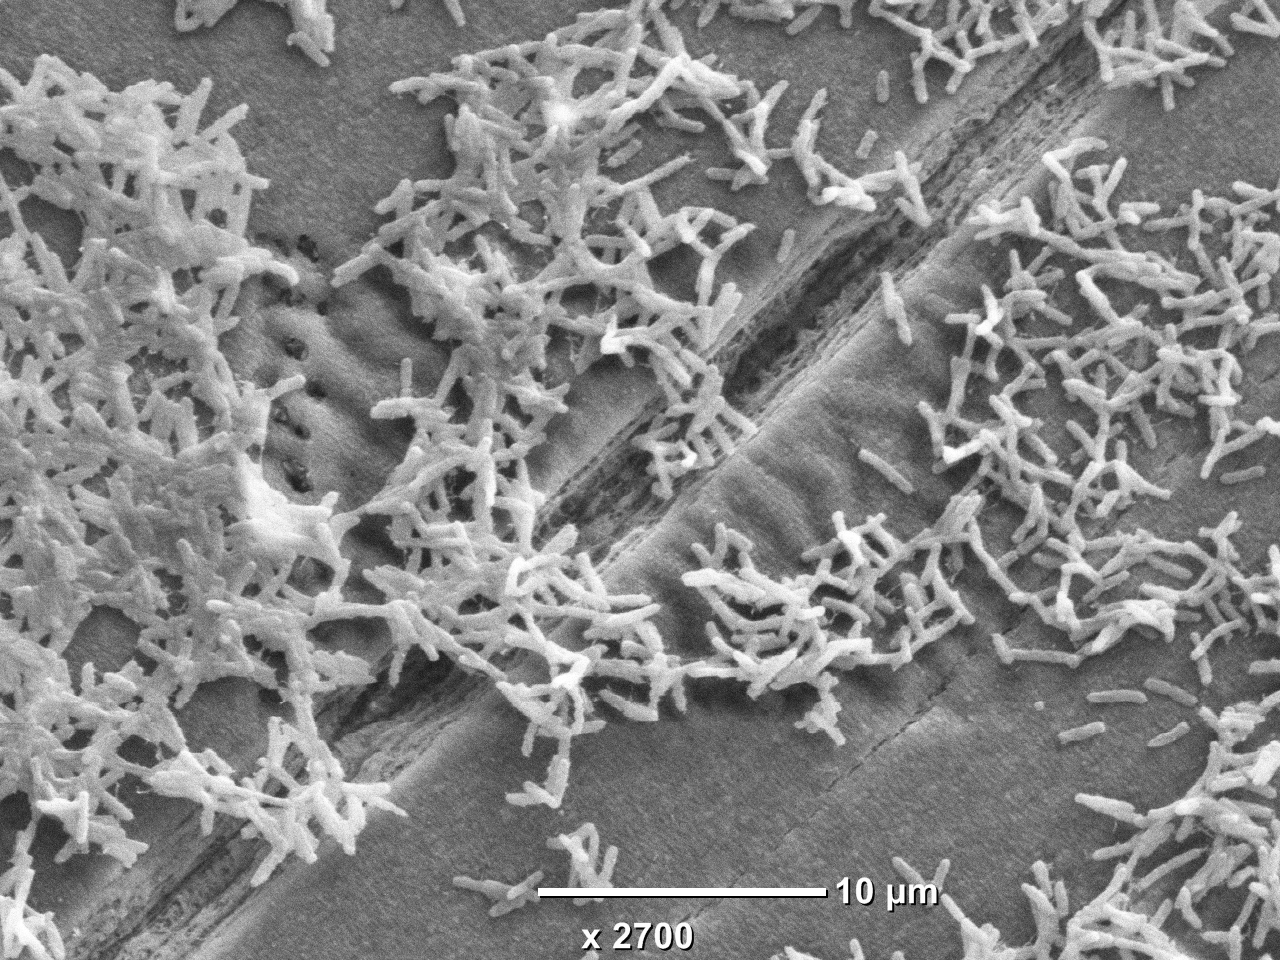 Understanding the difference between wet & dry surface biofilms